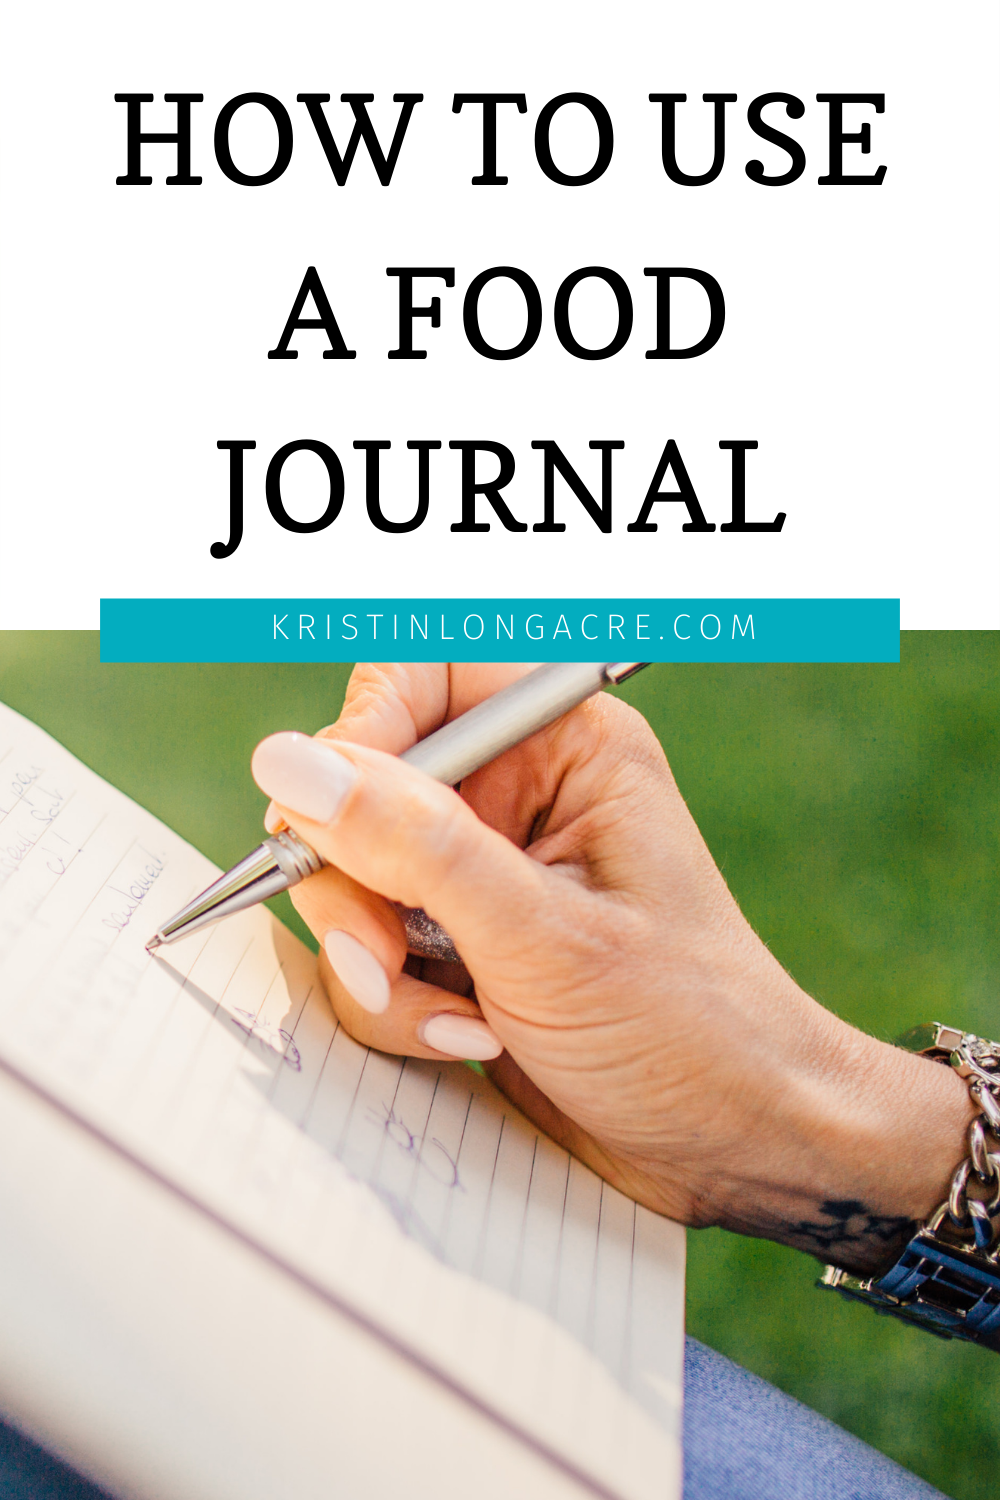 How to Use A Food Journal